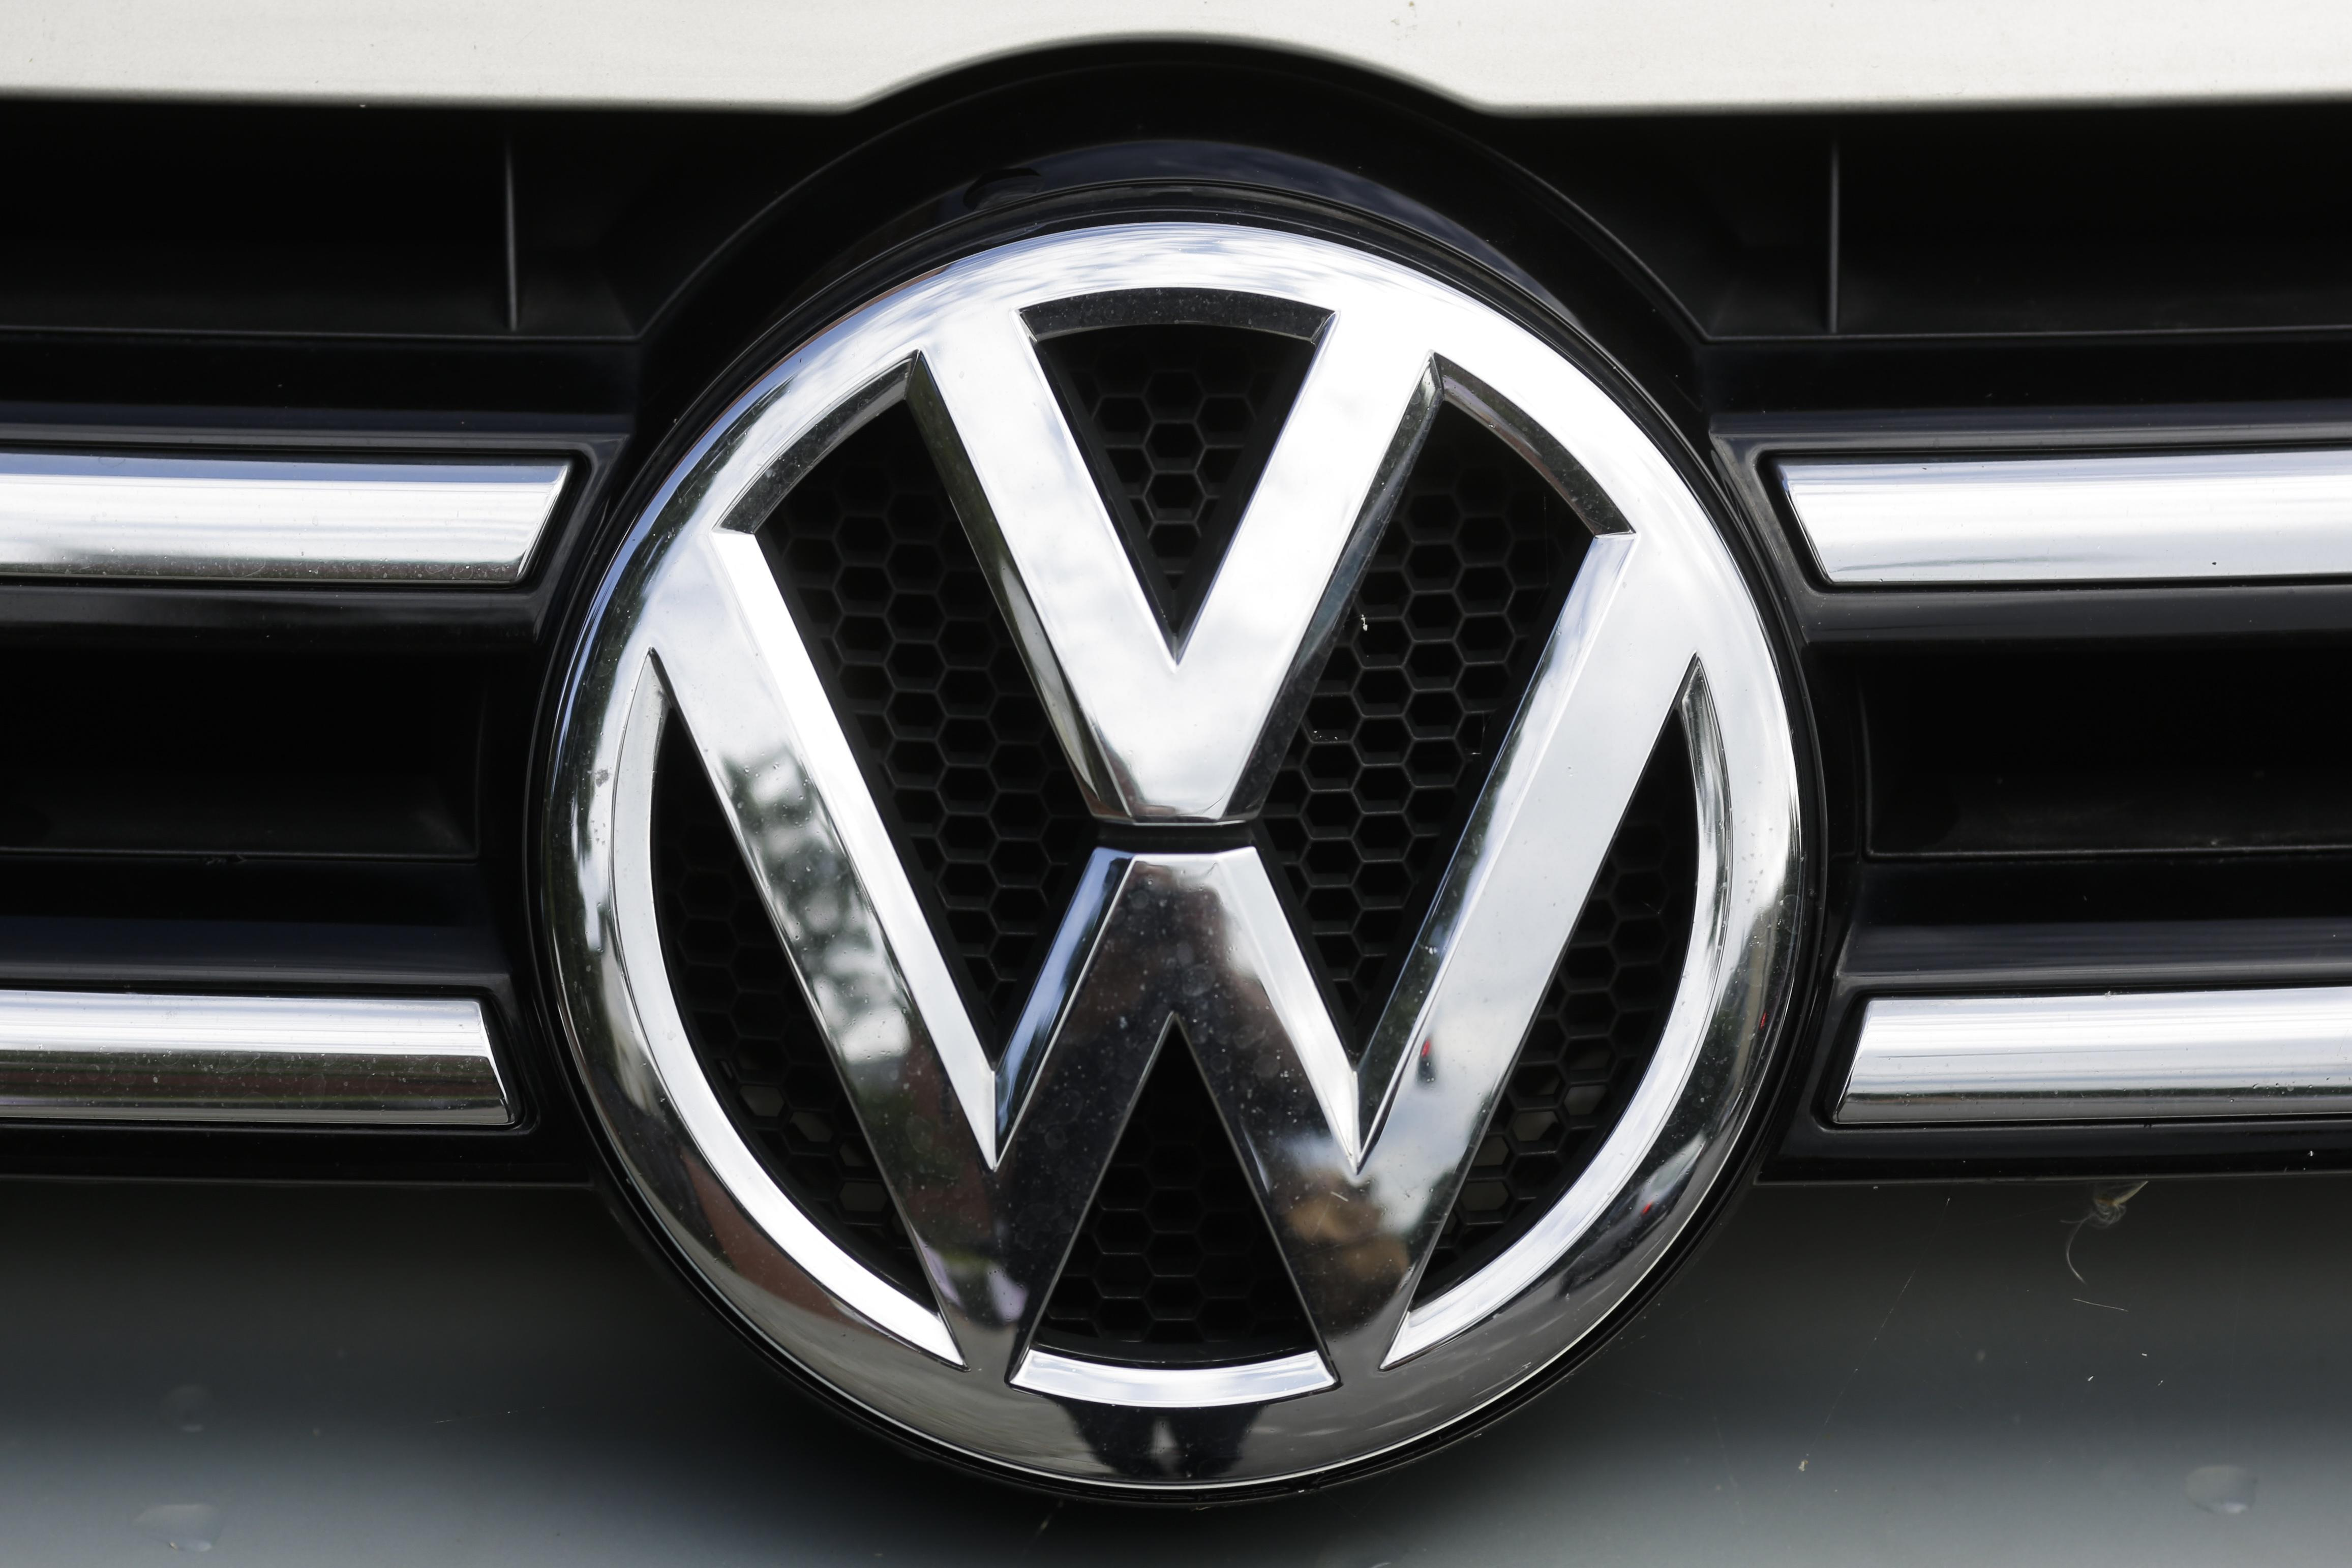 a vehicles recalling or car maker bags recall million is replace the articles in bag auto recalls air to volkswagen millions bn with of china